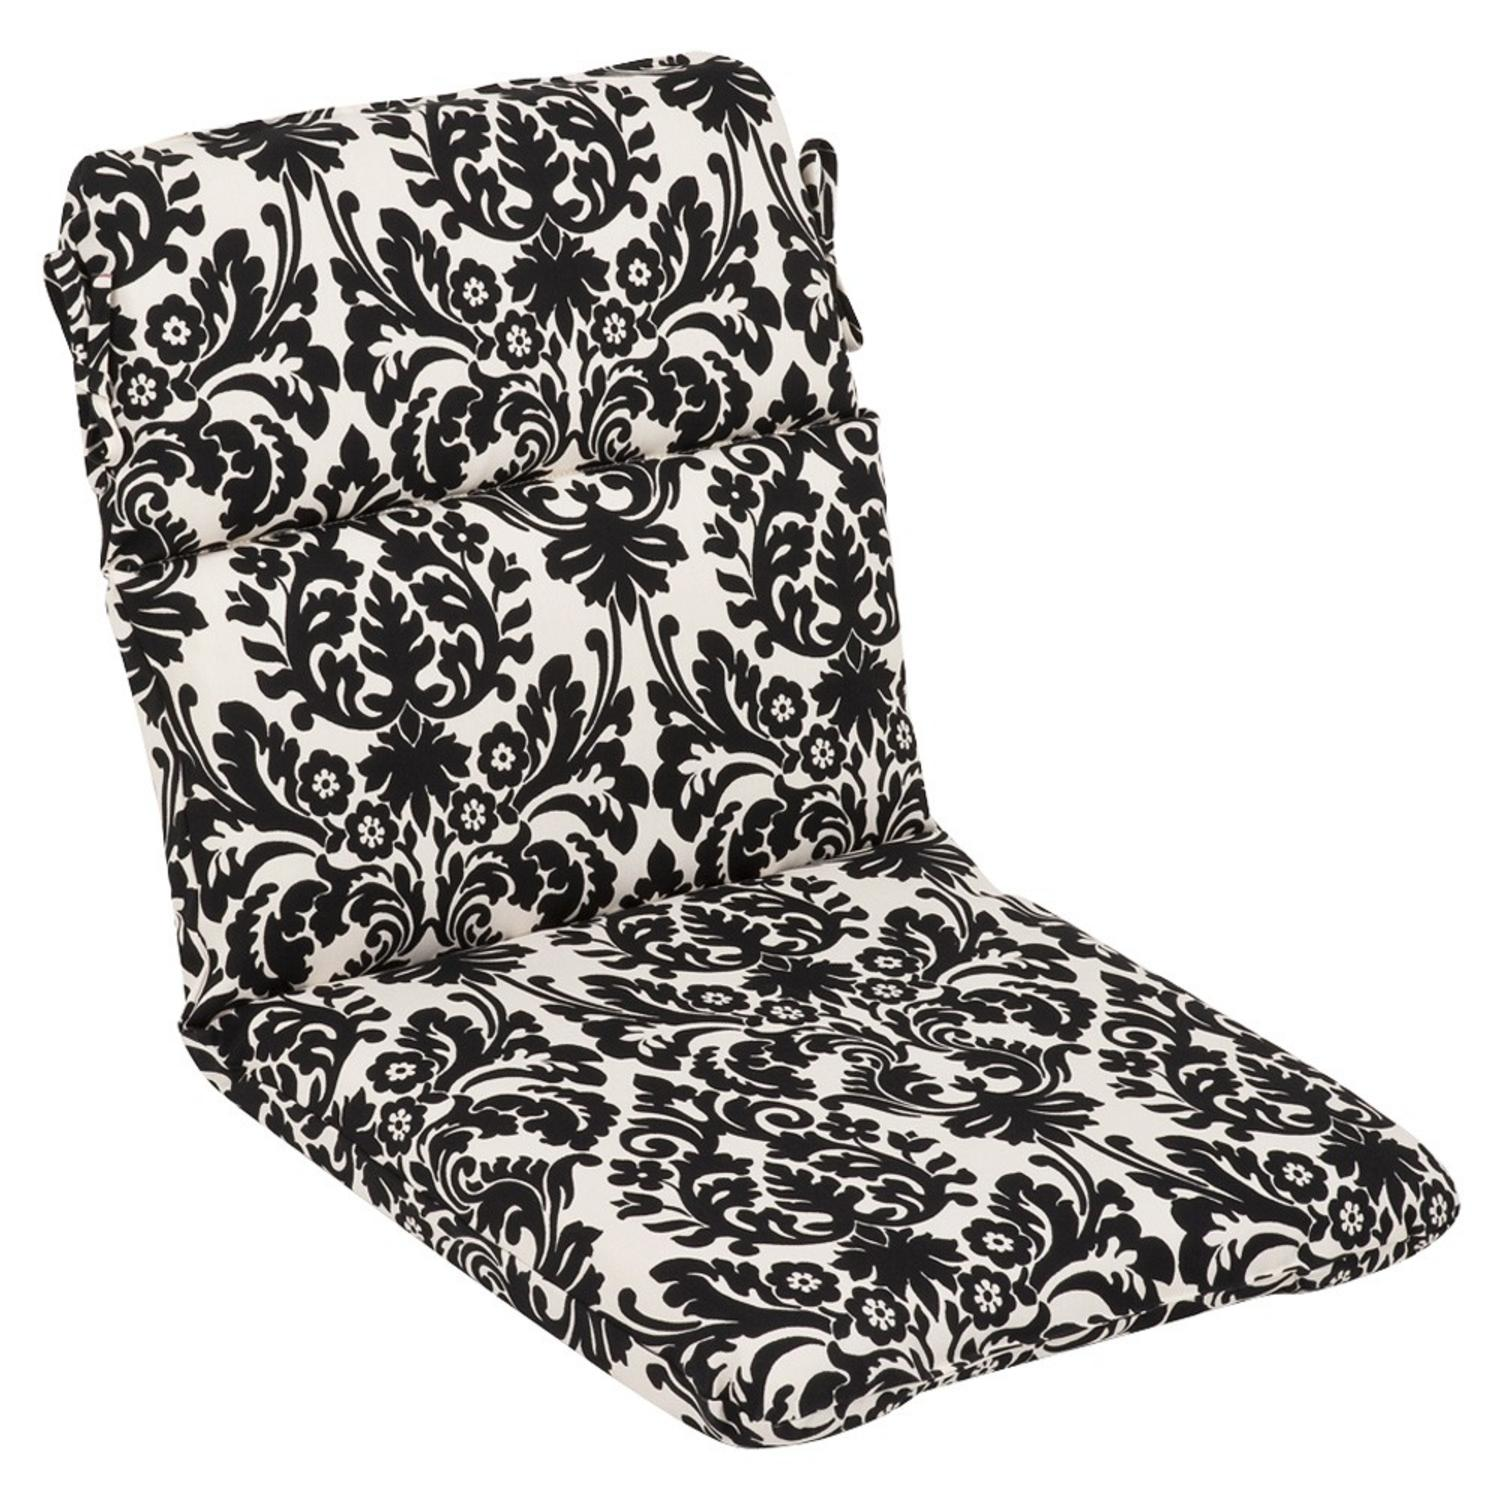 Outdoor Patio Furniture High Back Chair Cushion Dramatic Black & Cream Damask by CC Outdoor Living